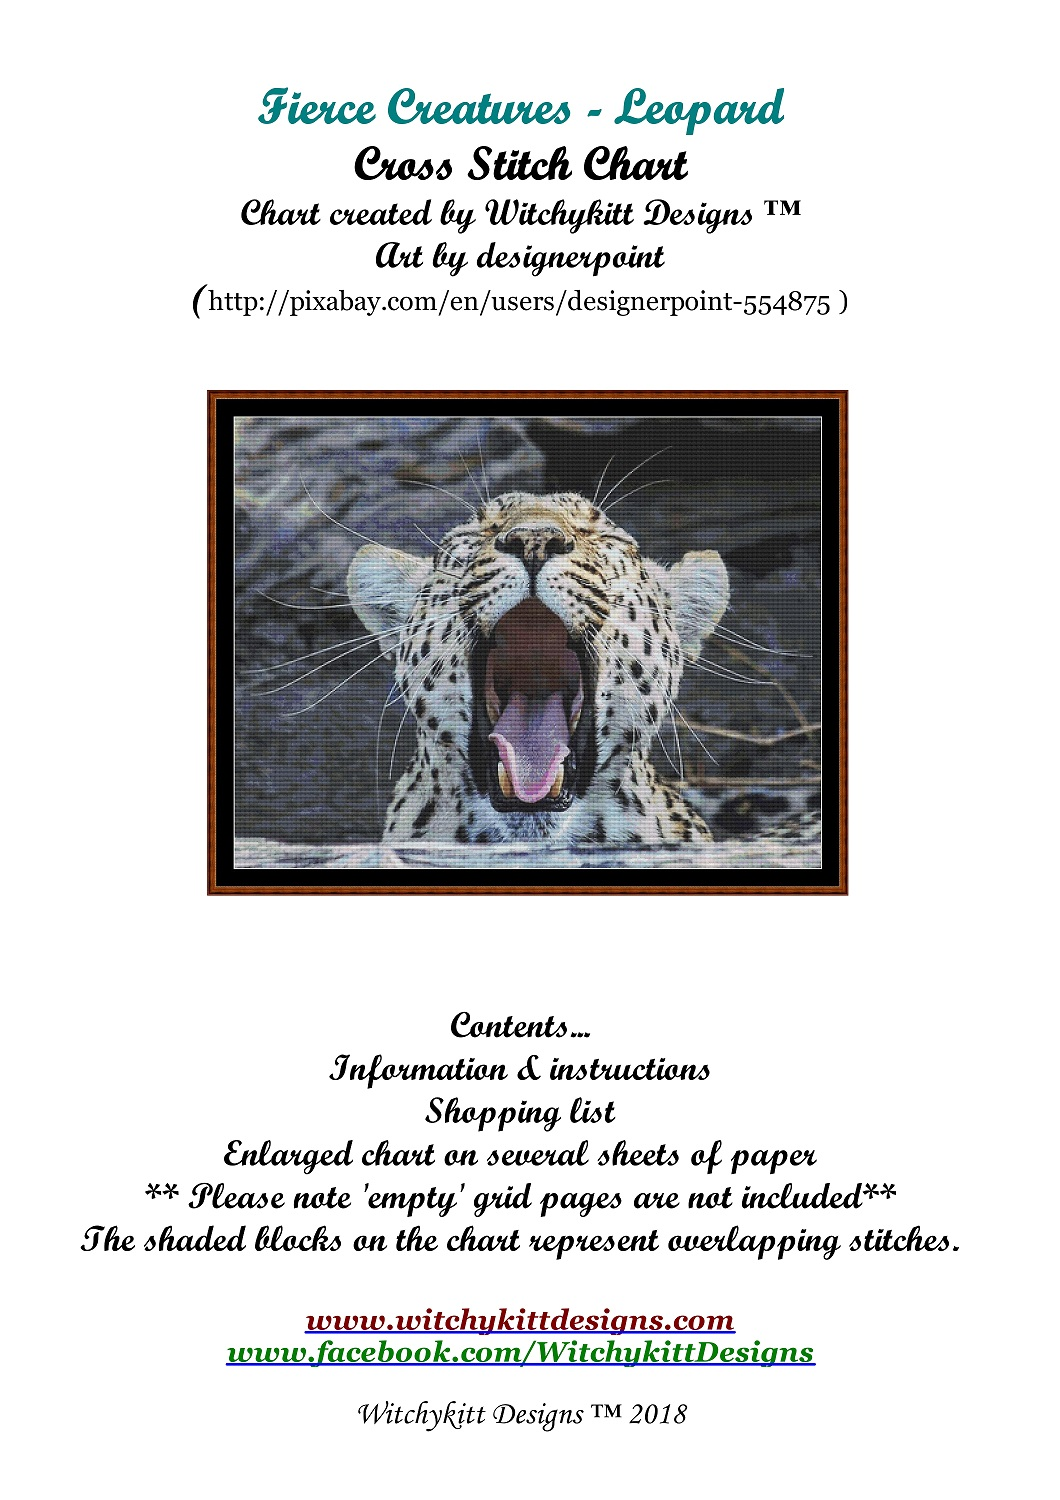 Fierce Creatures - Leopard Cross Stitch